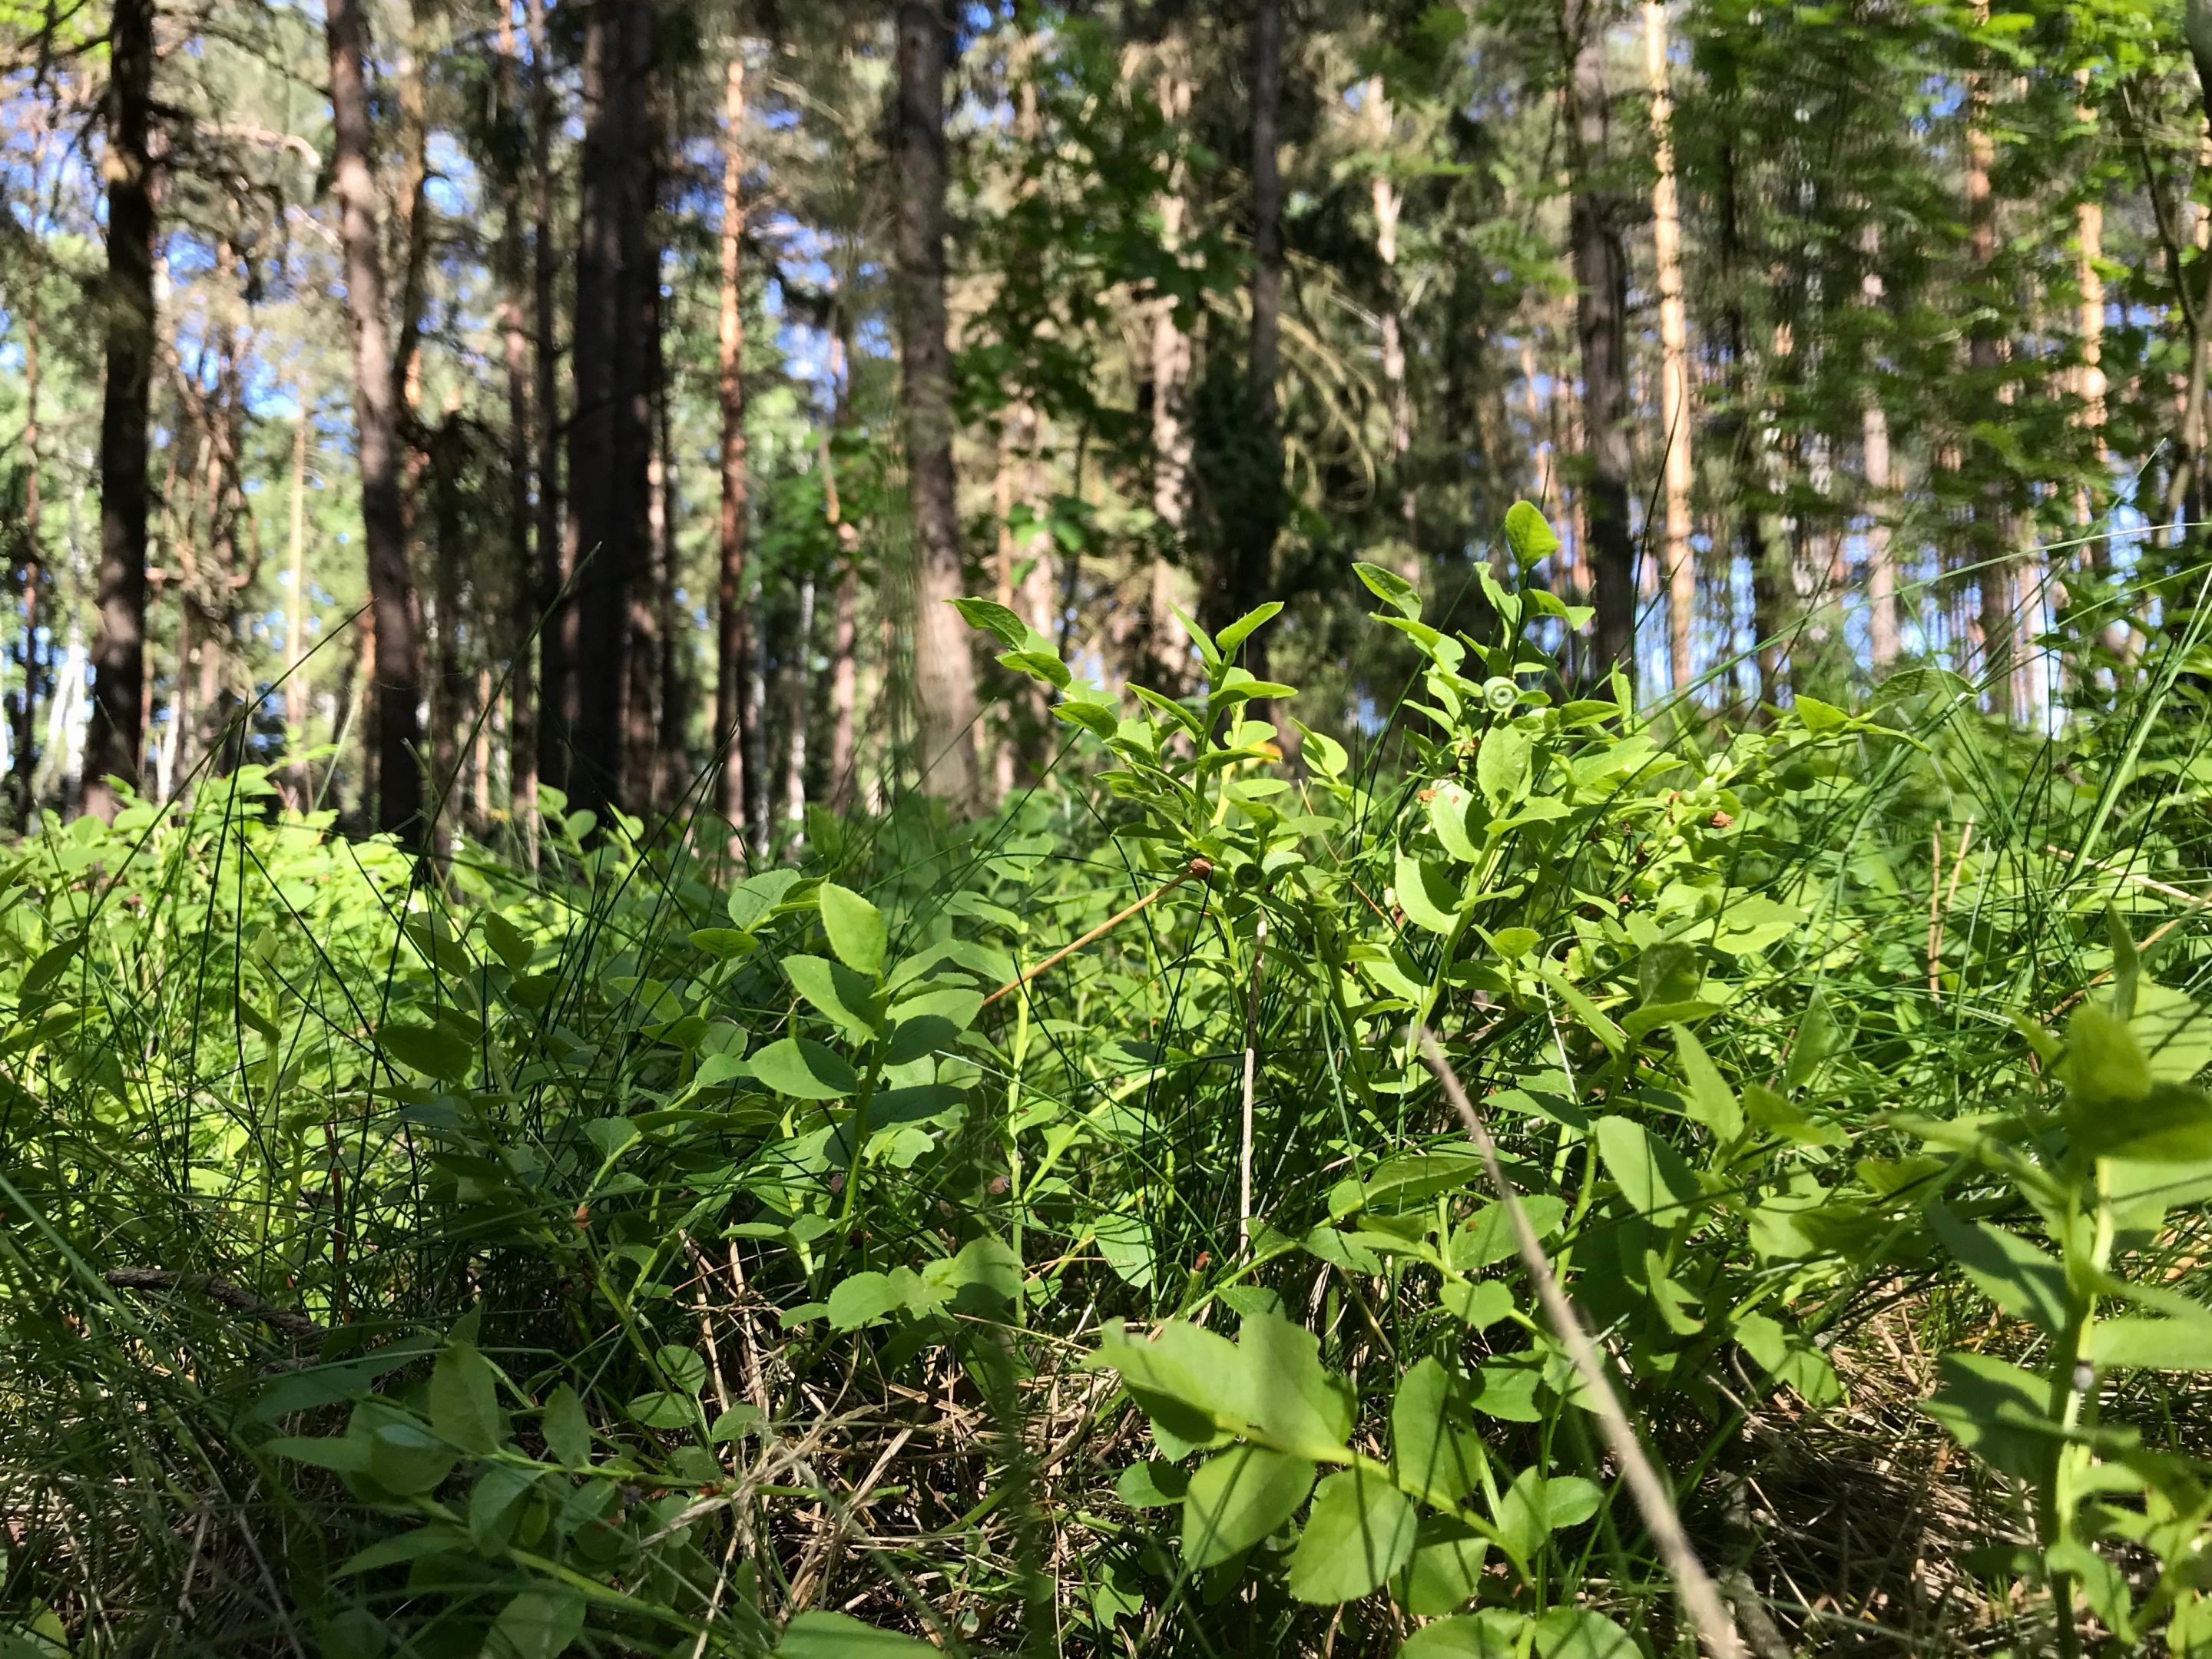 Bilberry shrubs in the forest